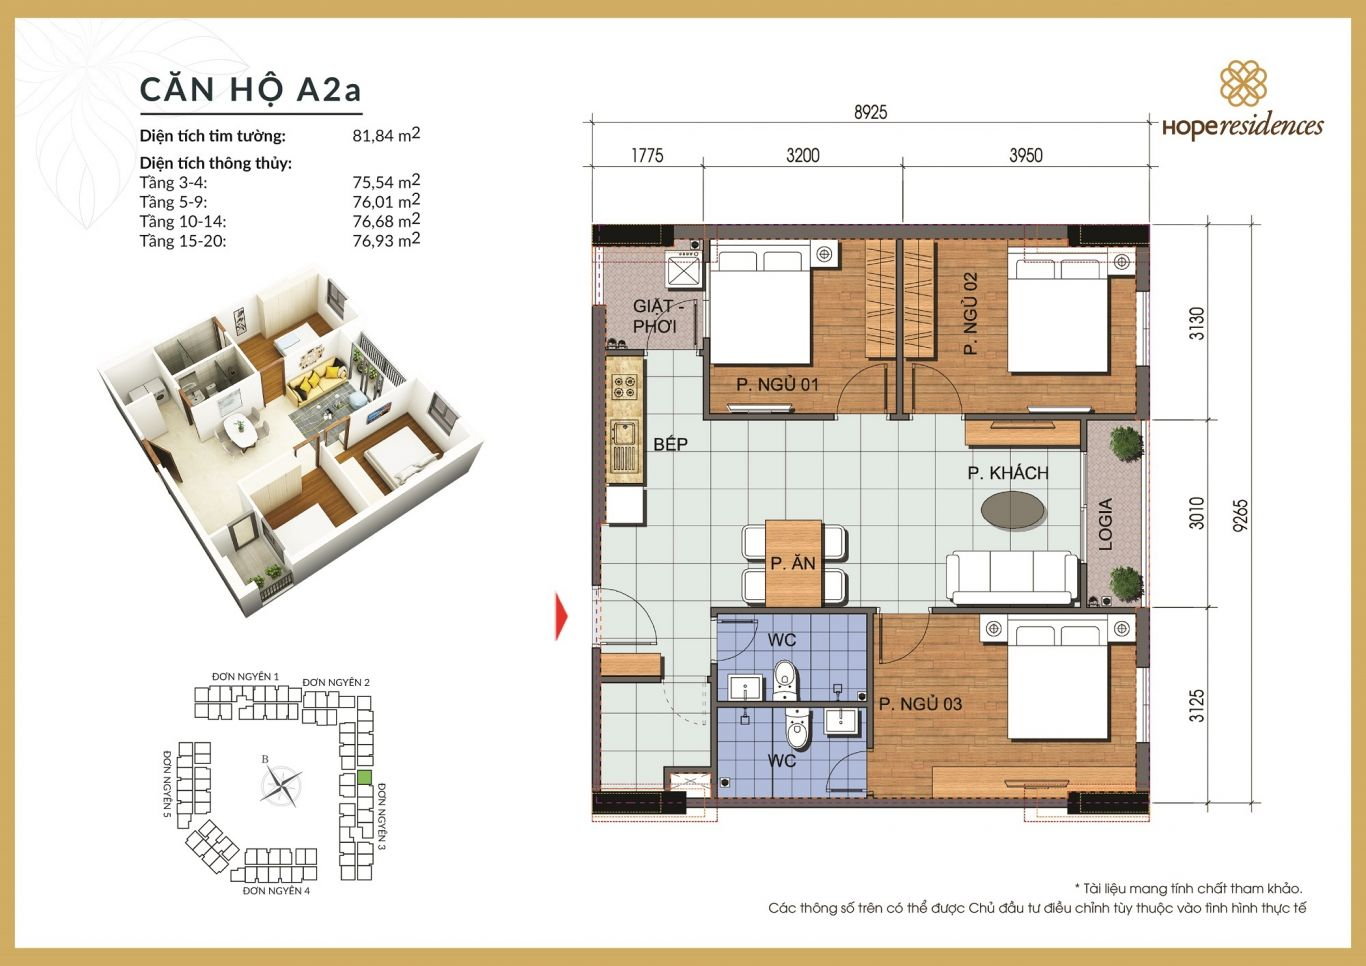 mat-bang-thiet-ke-can-ho-a2a-hope-residences